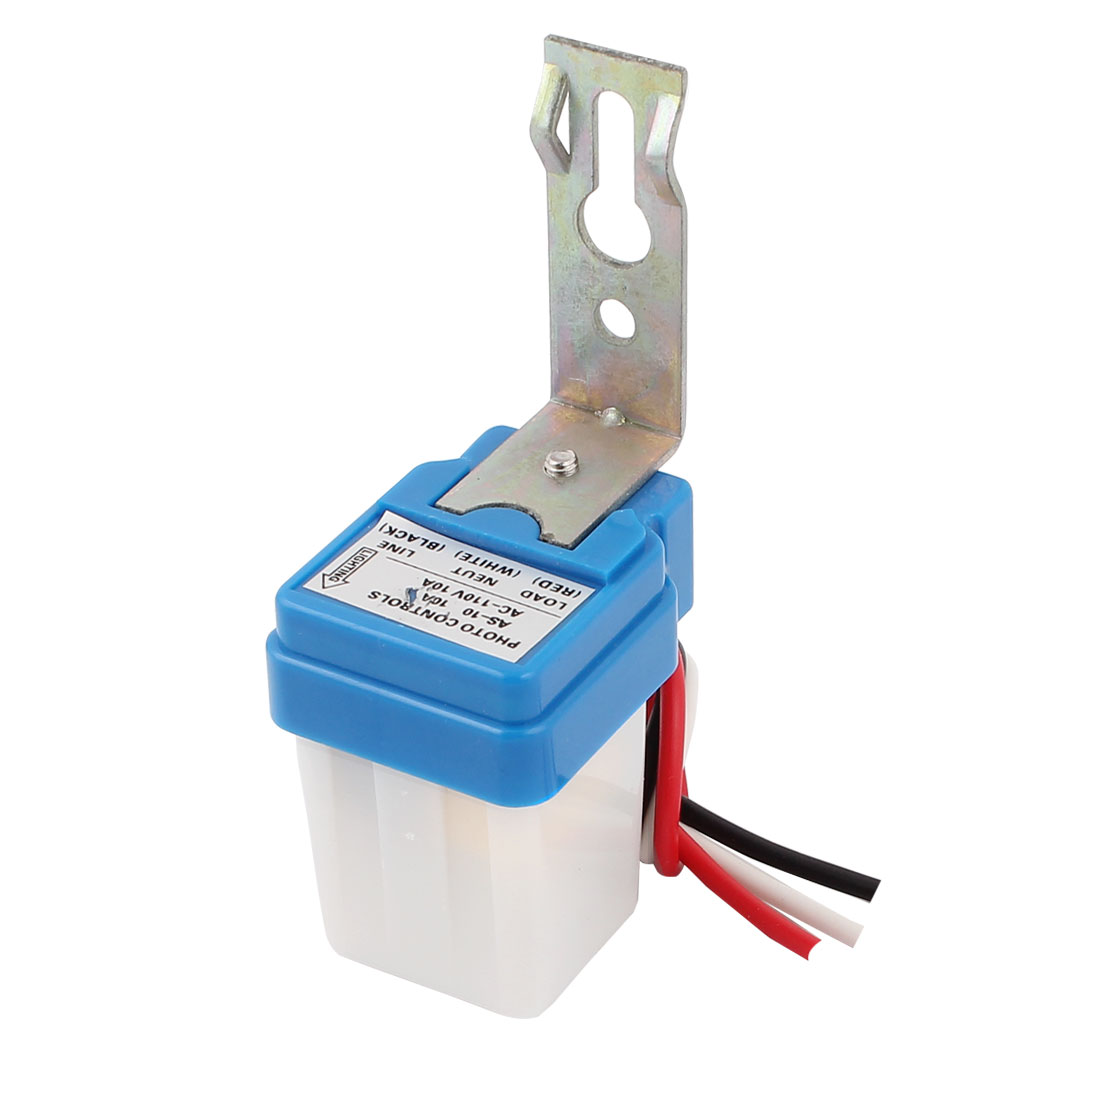 AC110V 10A Automatic On Off Photocontrol Light Sensor Switch for Street Lamp